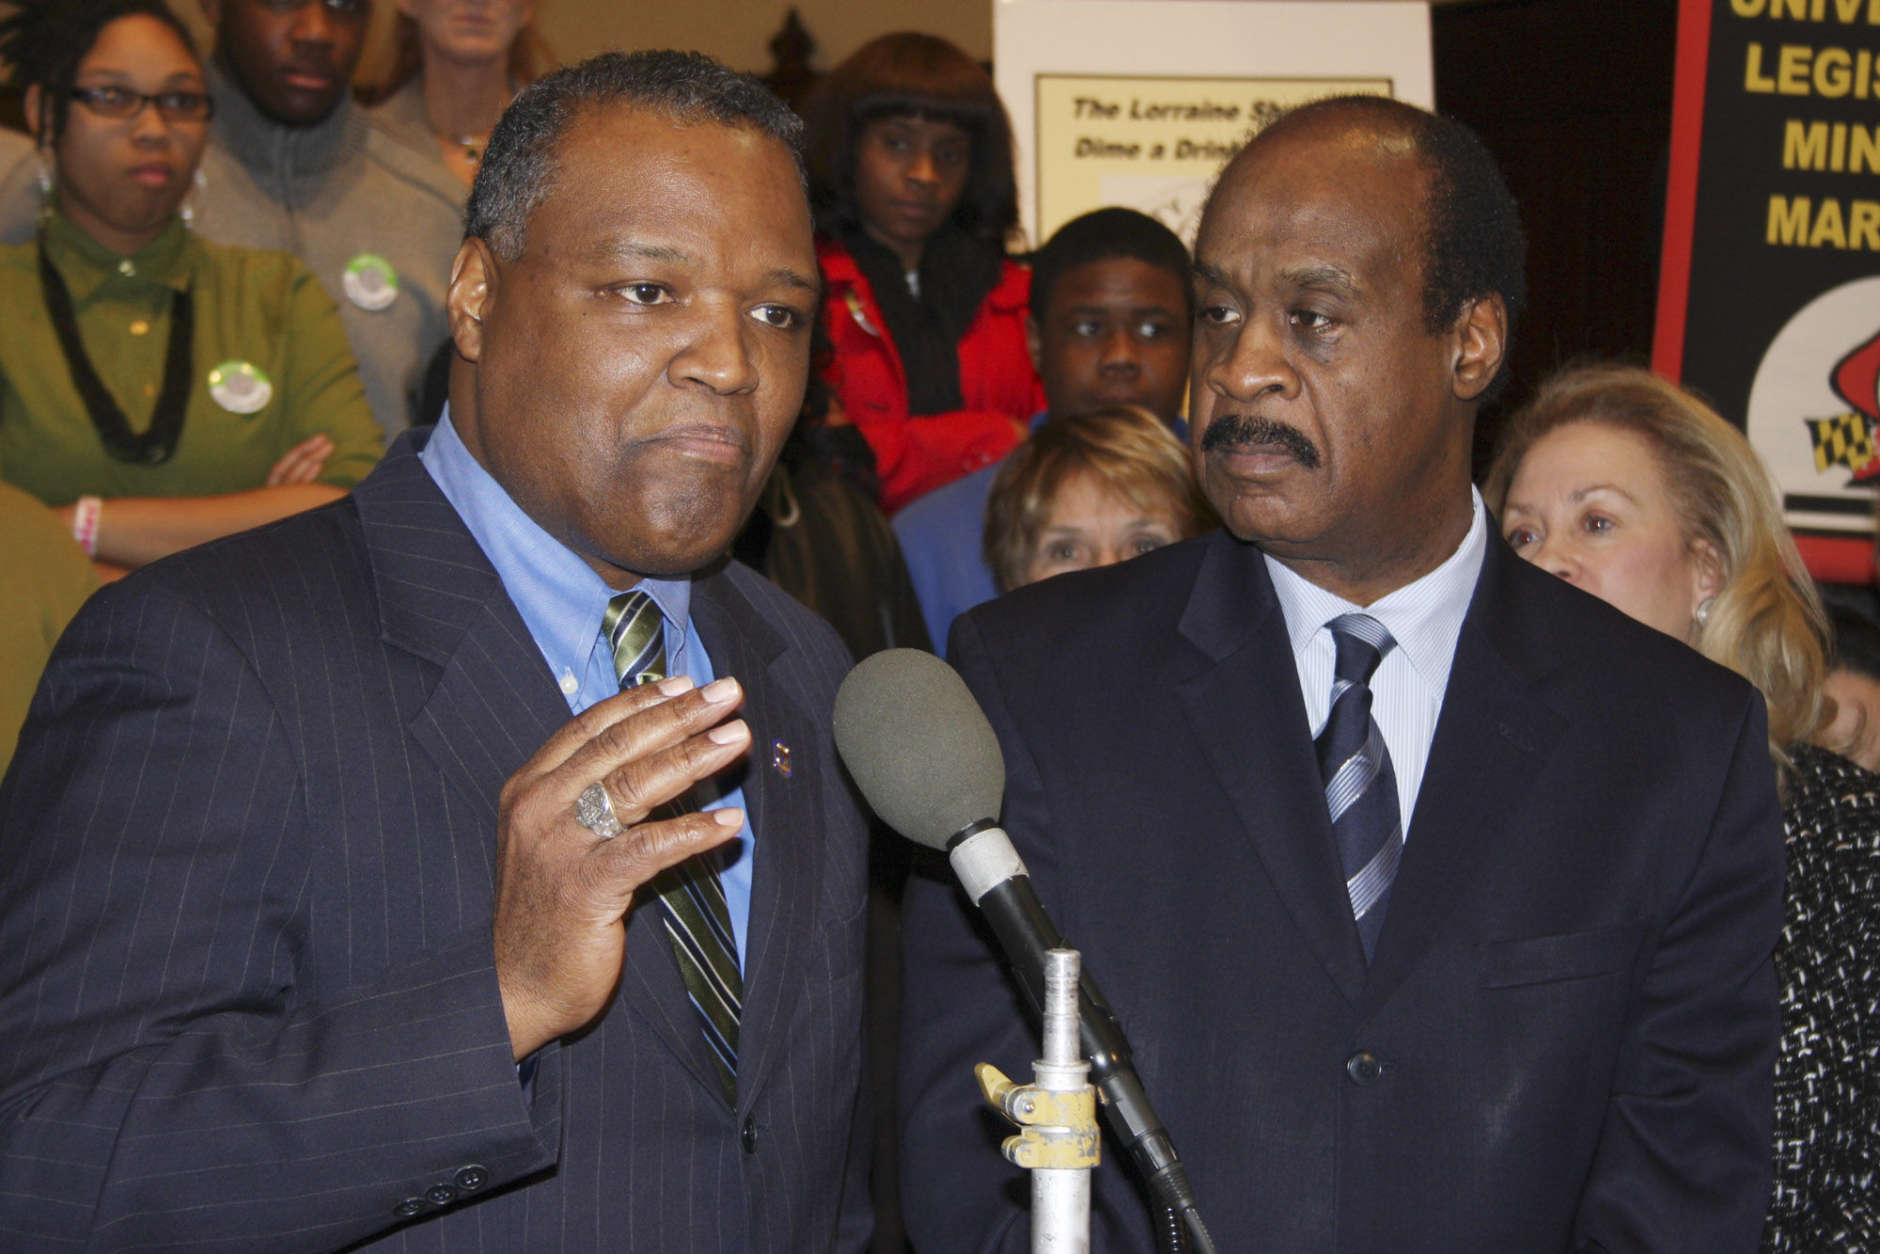 Prince George's County Executive Rushern Baker, left, and Montgomery County Executive Ike Leggett rally on Wednesday, Feb. 16, 2011 in Annapolis, Md., to express their support to raise Maryland's alcohol tax to raise about $215 million a year to help initiatives for health and the developmentally disabled. State senators from Baltimore also gathered at St. Anne's Episcopal Church to express their support.   (AP Photo/Brian Witte)